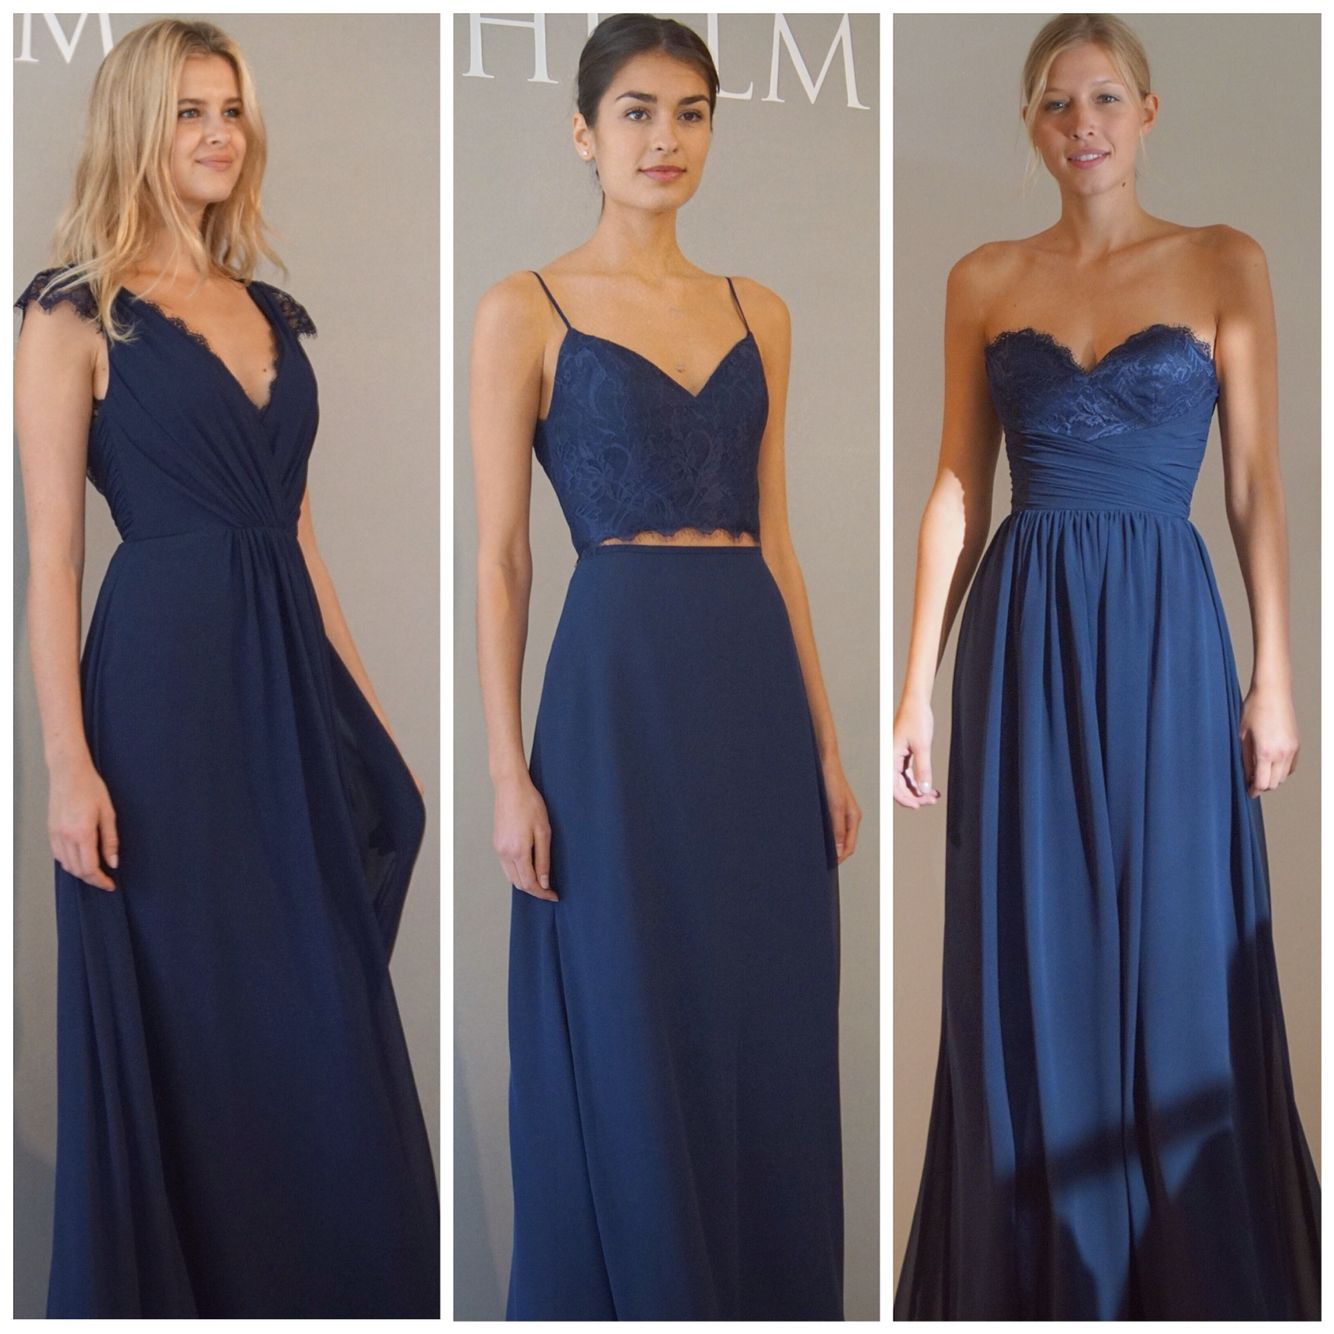 b48f12c9df Hayley Paige Occasions bridesmaids dresses Styles 5600